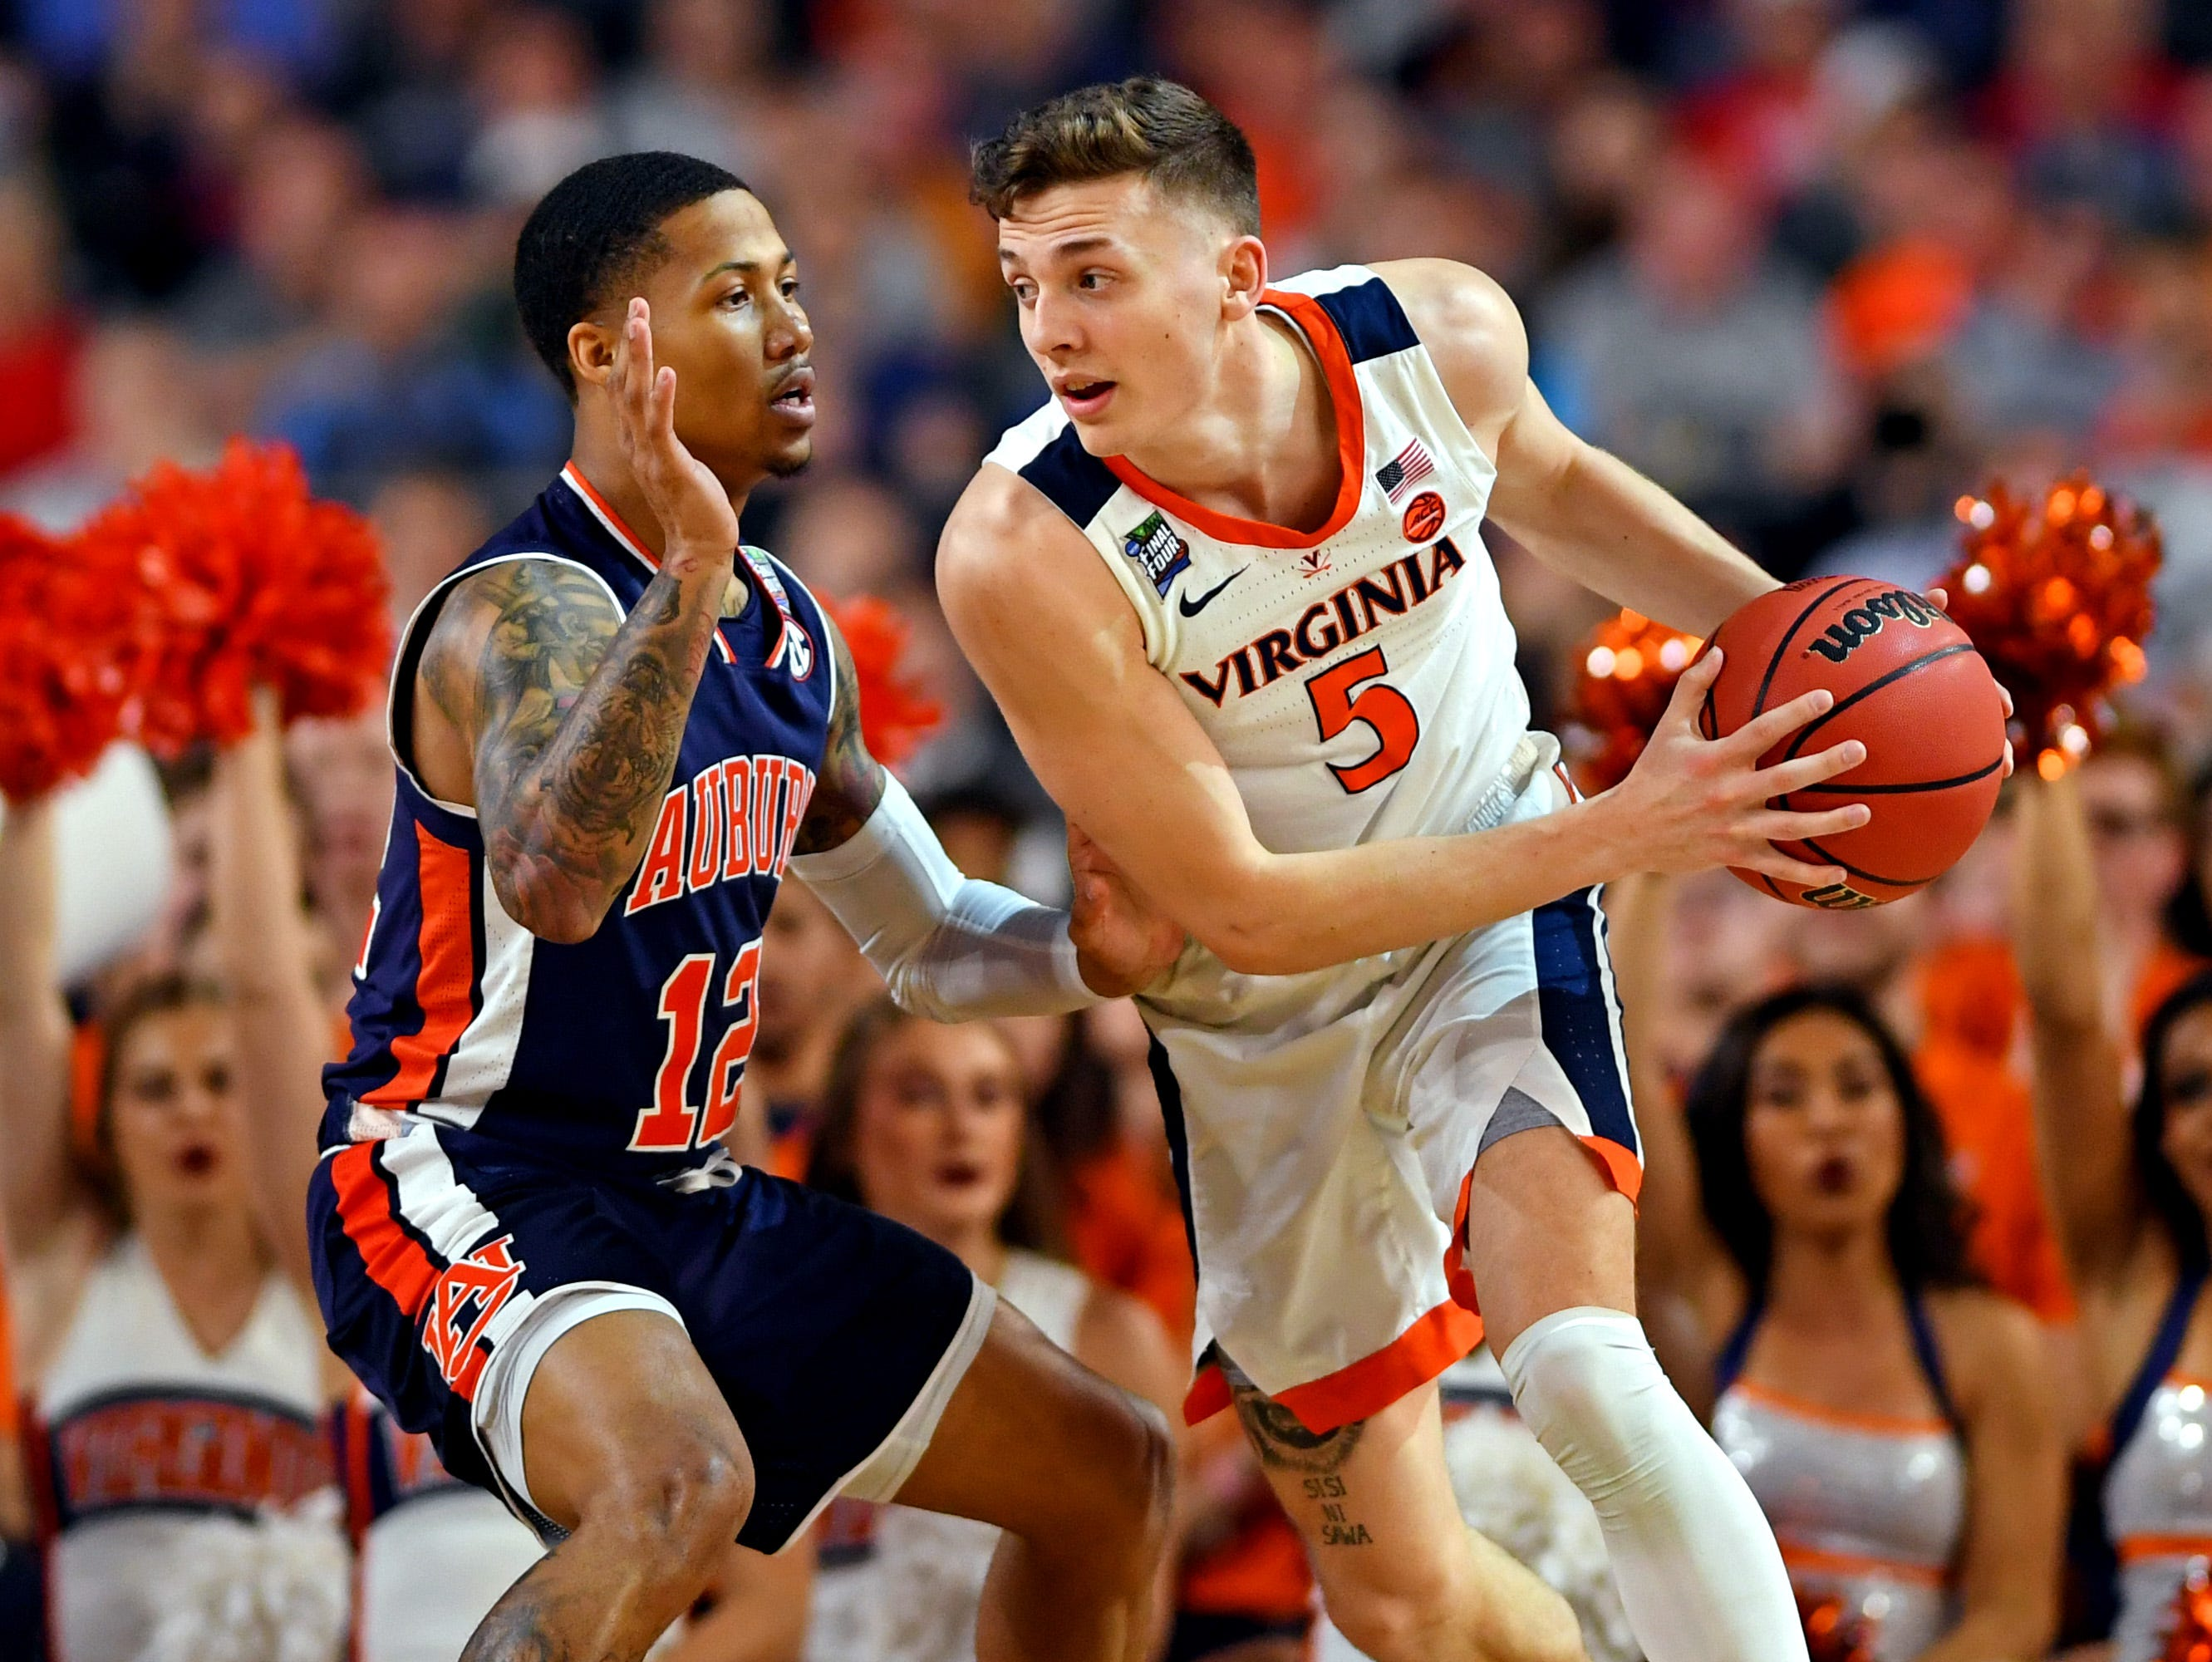 Apr 6, 2019; Minneapolis, MN, USA; Virginia Cavaliers guard Kyle Guy (5) handles the ball against Auburn Tigers guard J'Von McCormick (12) during the second half in the semifinals of the 2019 men's Final Four at US Bank Stadium. Mandatory Credit: Bob Donnan-USA TODAY Sports